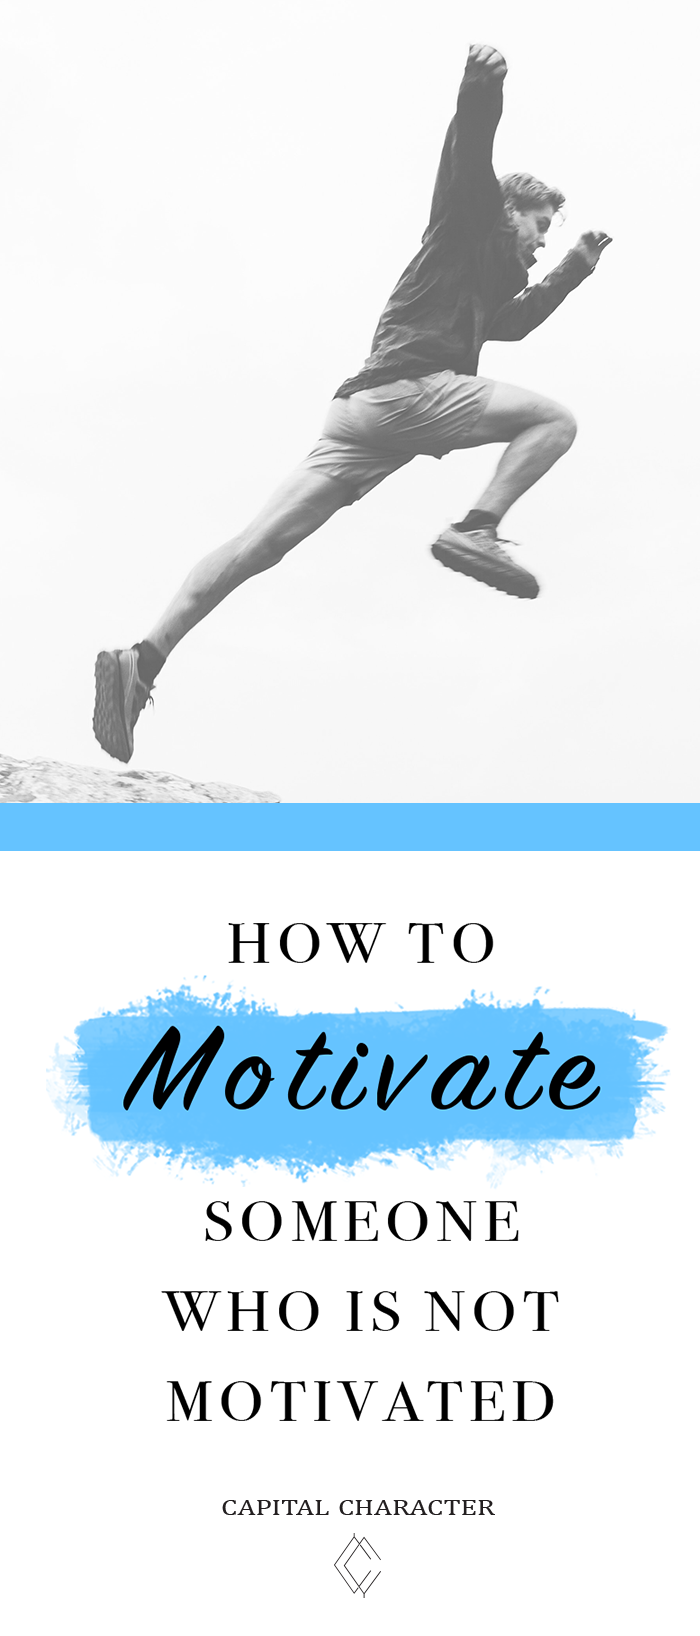 How To Motivate Someone Who Is Not Motivated? | Capital Character